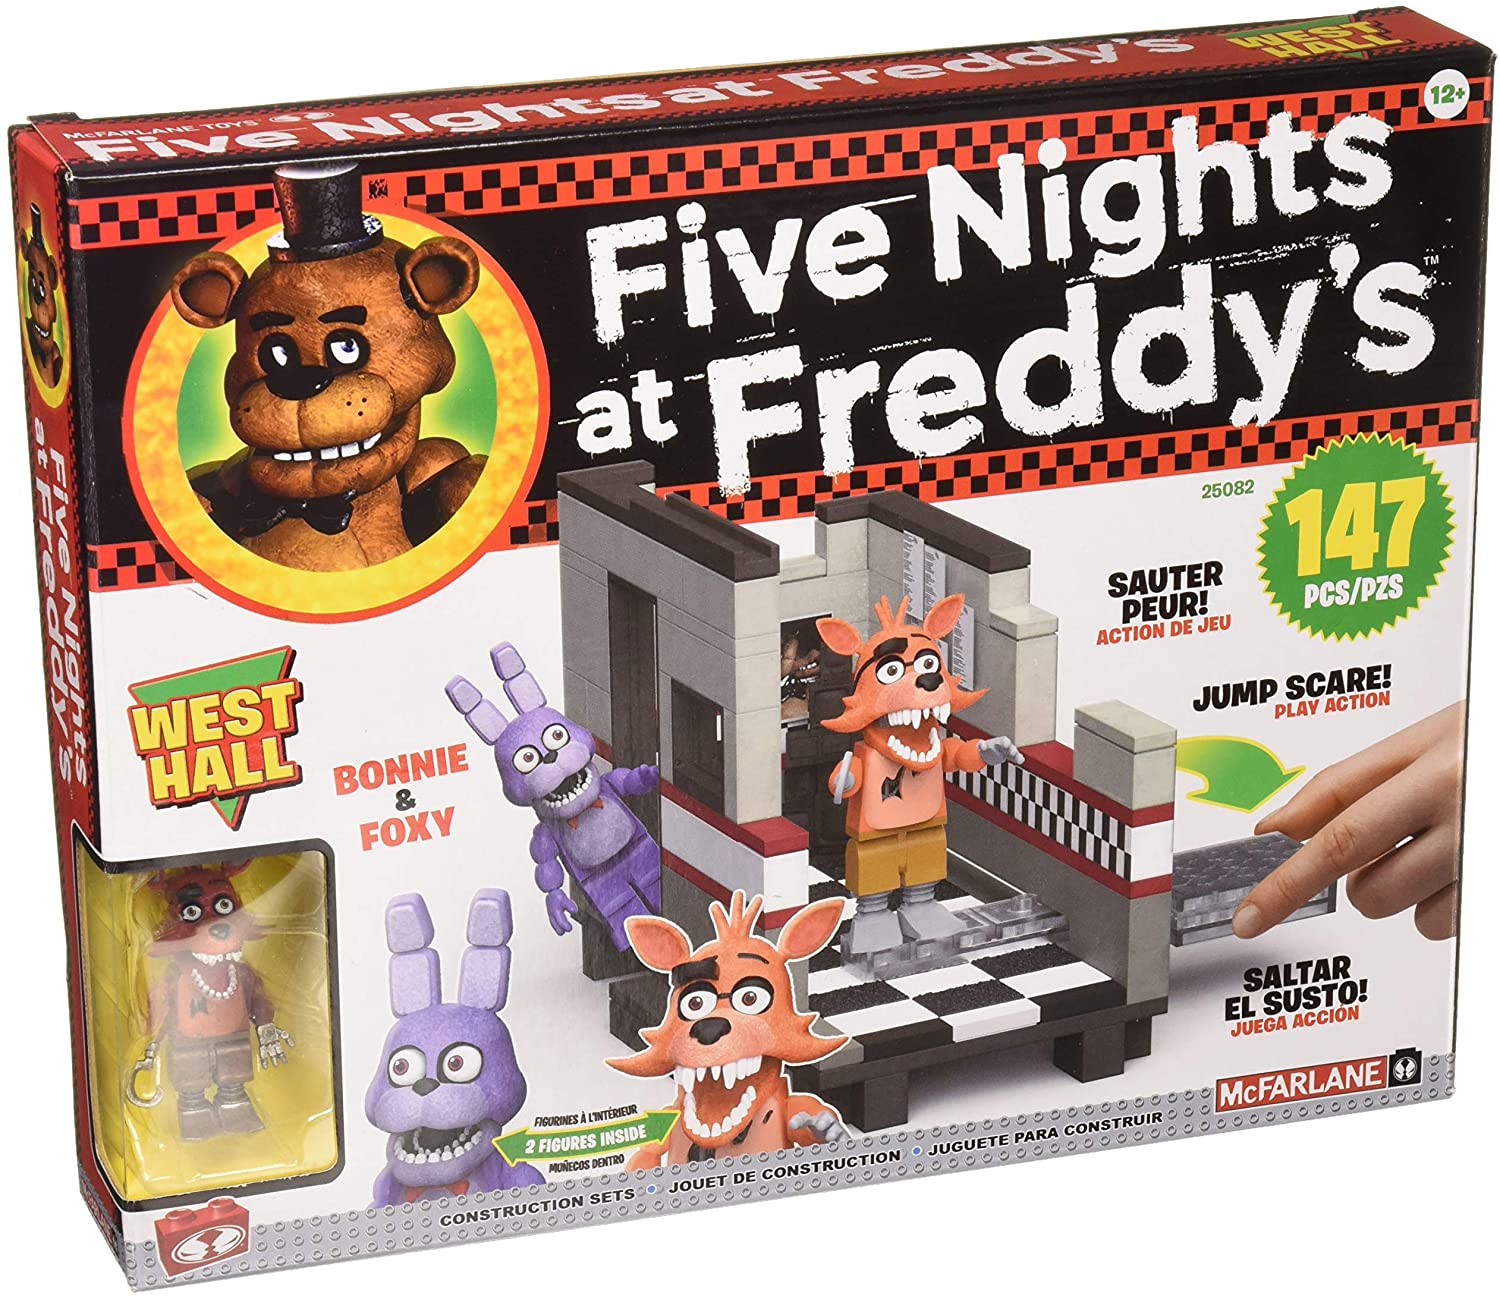 Kit de Construcción Medium West Hall. Five Nights at Freddys. McFarlane Toys: Amazon.es: Juguetes y juegos